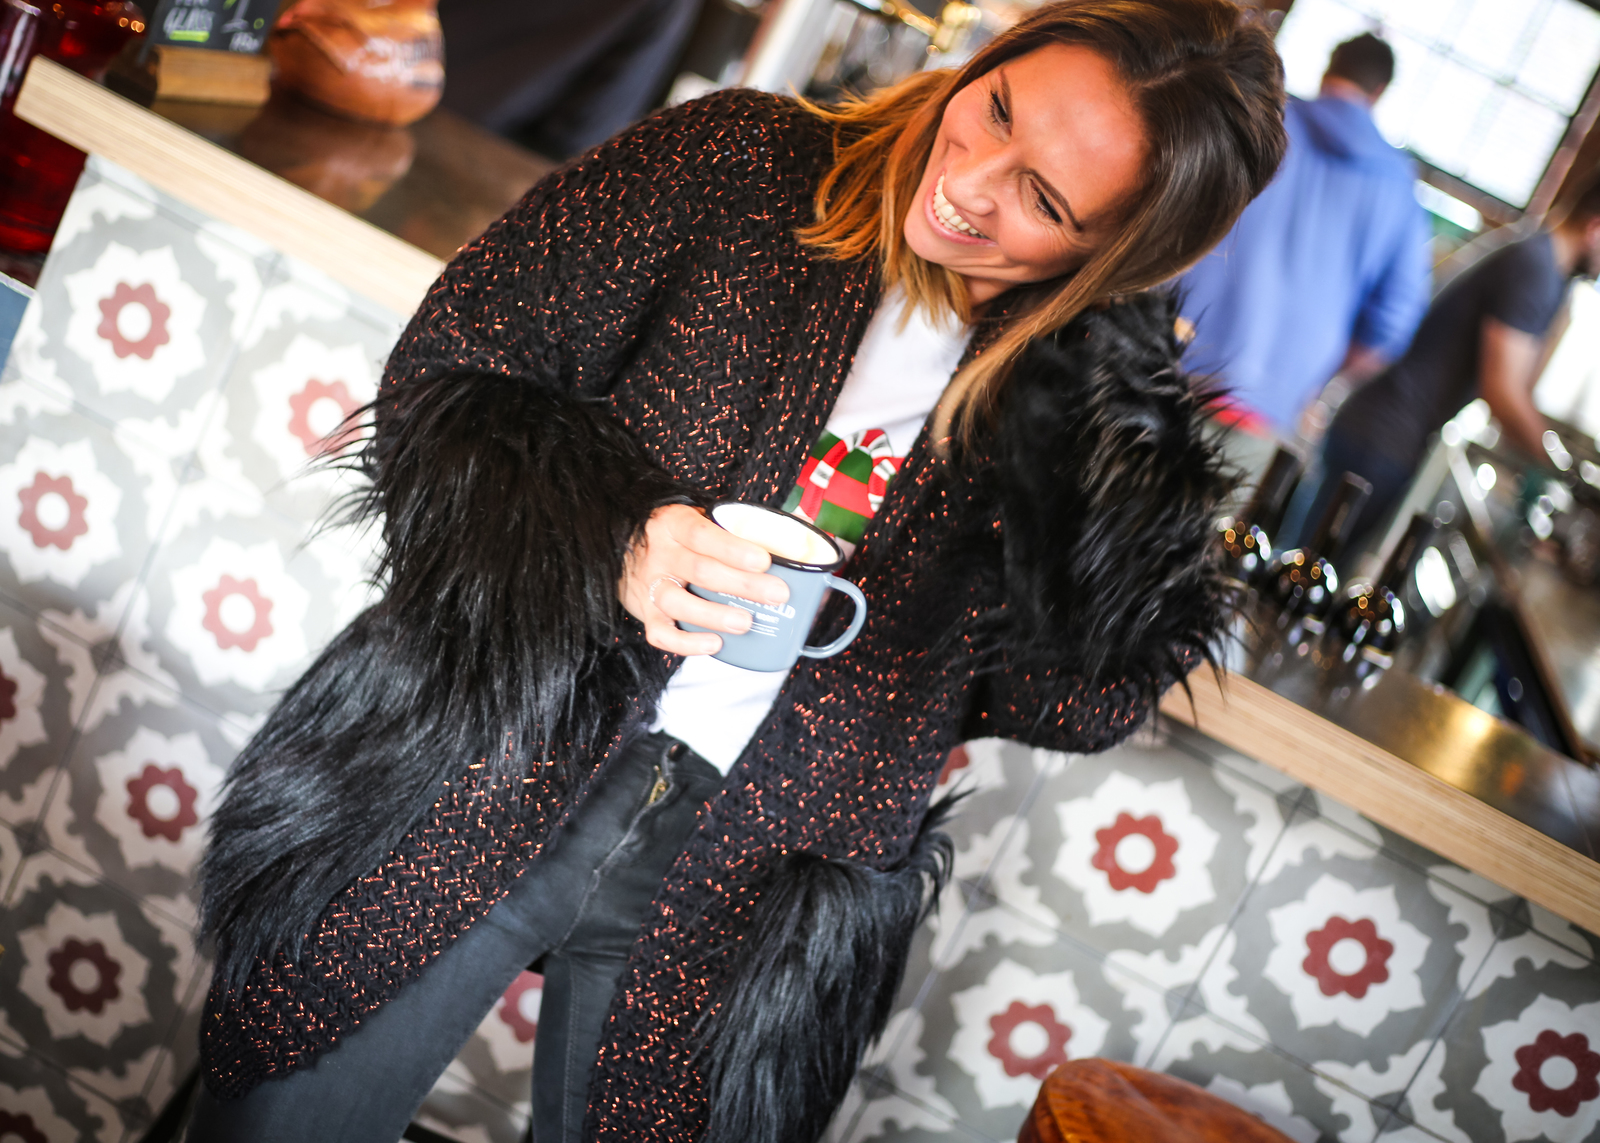 Claire Elizabeth standing holding a coffee cup in Lindfield Coffee works wearing black Faux Fur trimmed coatigan and laughing